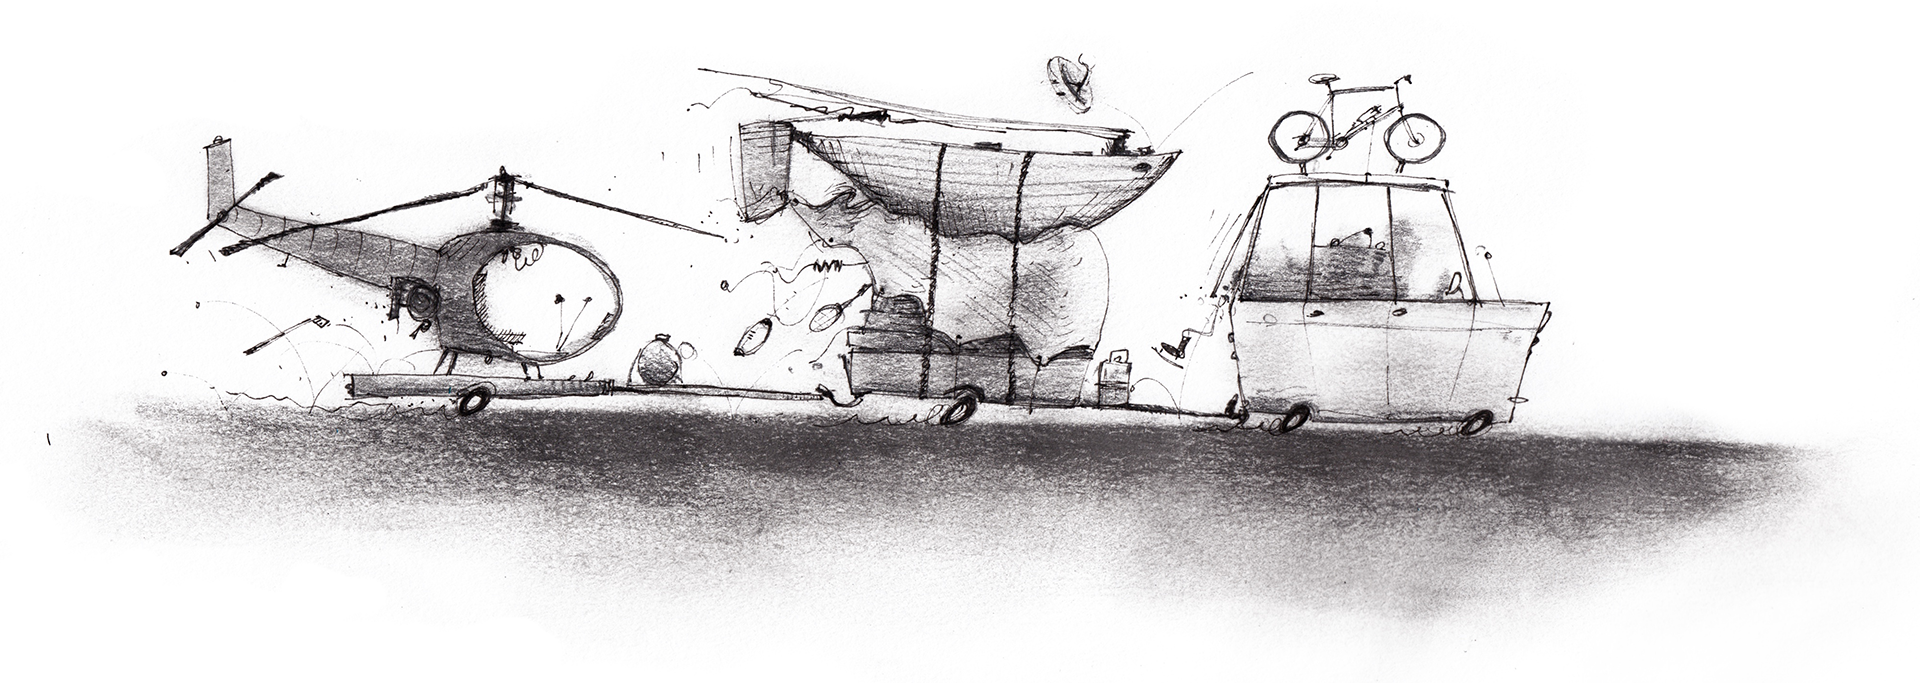 Illustration of a small car towing multiple overloaded trailers of vacation equipment.